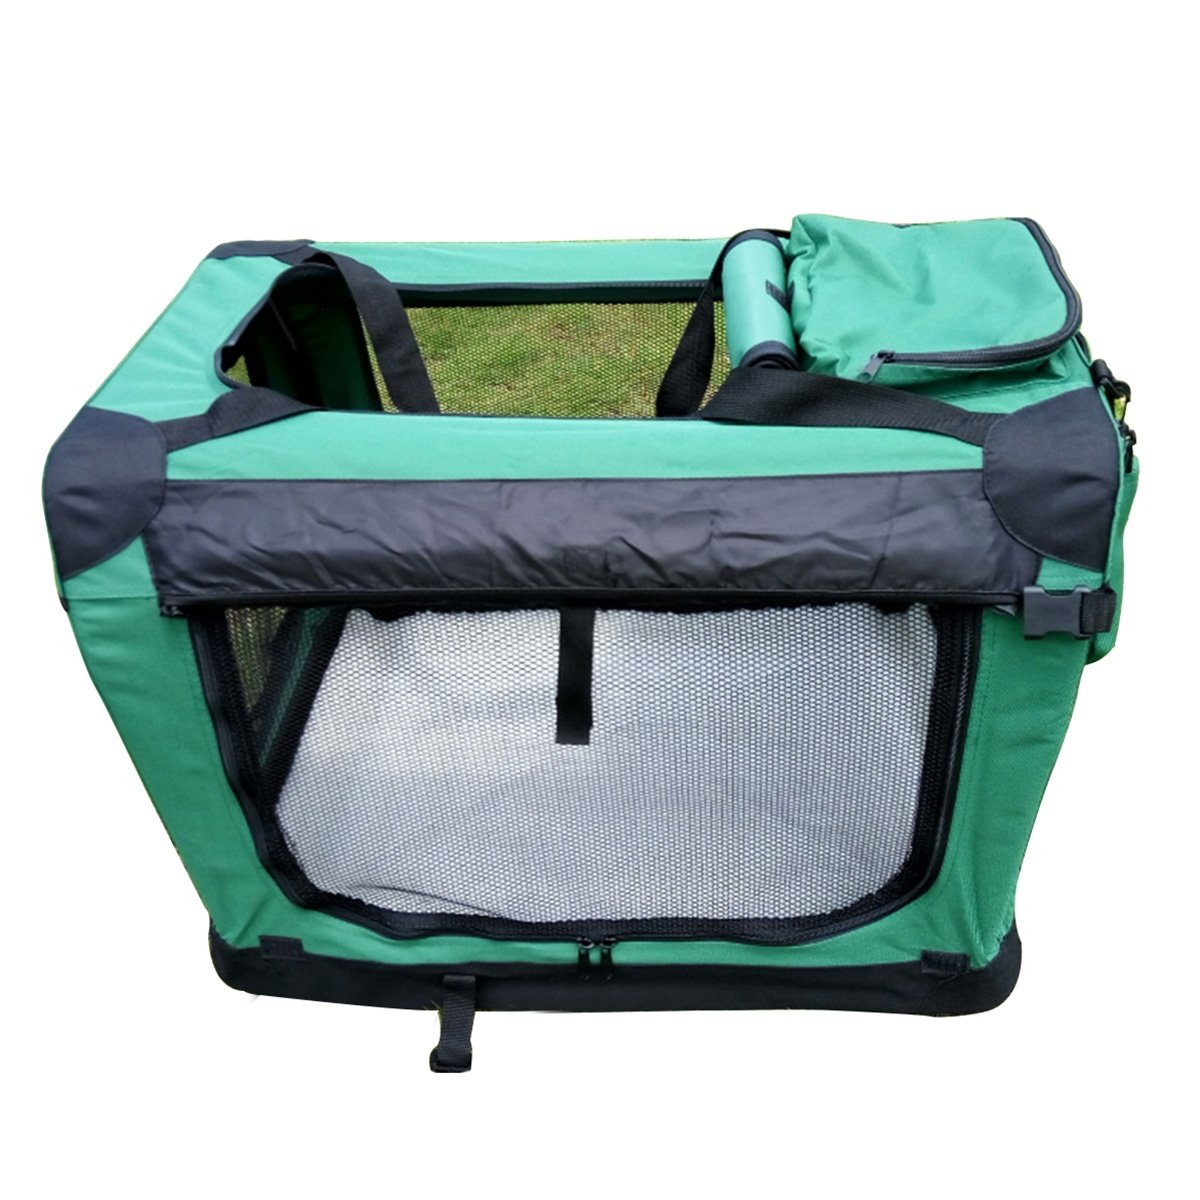 Green S green S shanzhizui Pet tent nest Outing pet cage Car kennel Cat nest 1.9cm steel dog cage, green, S